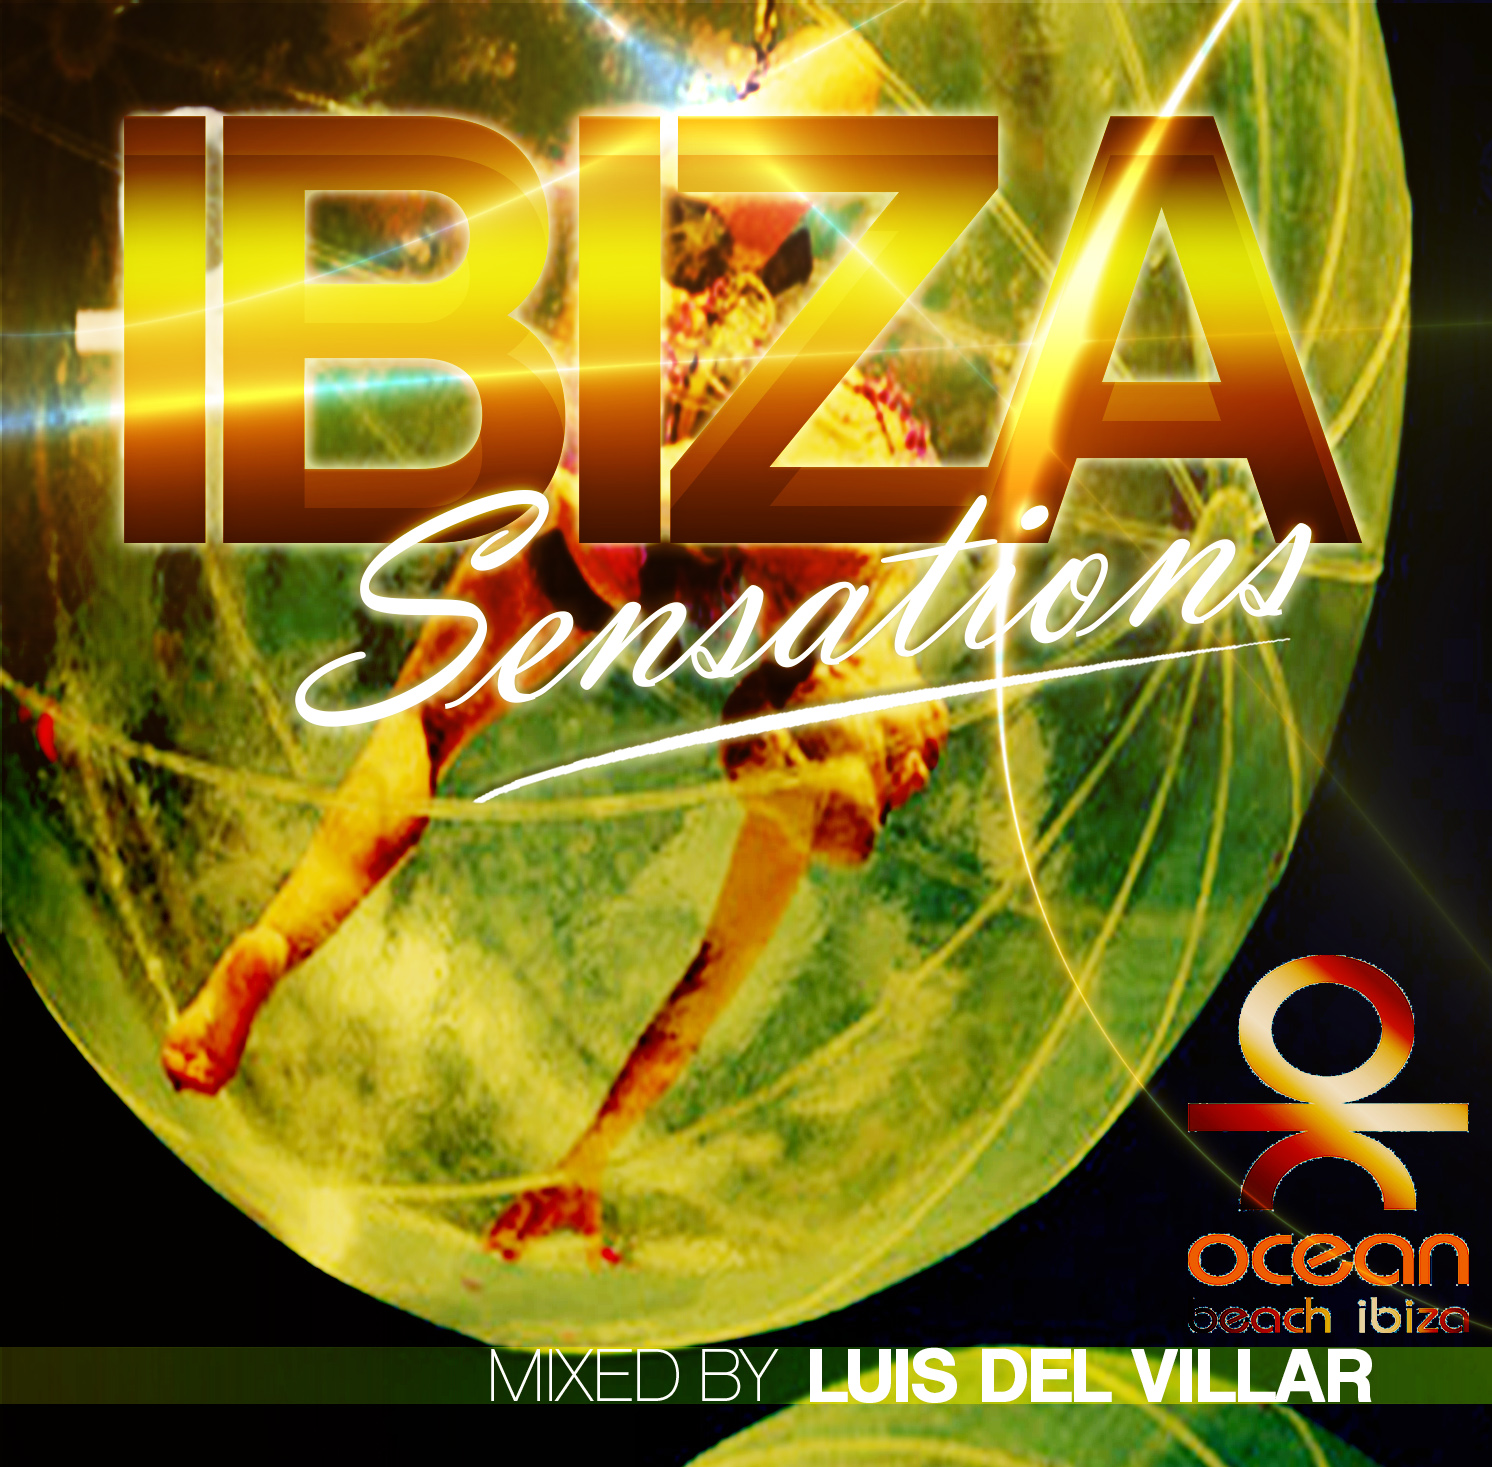 Artwork for Ibiza Sensations 94